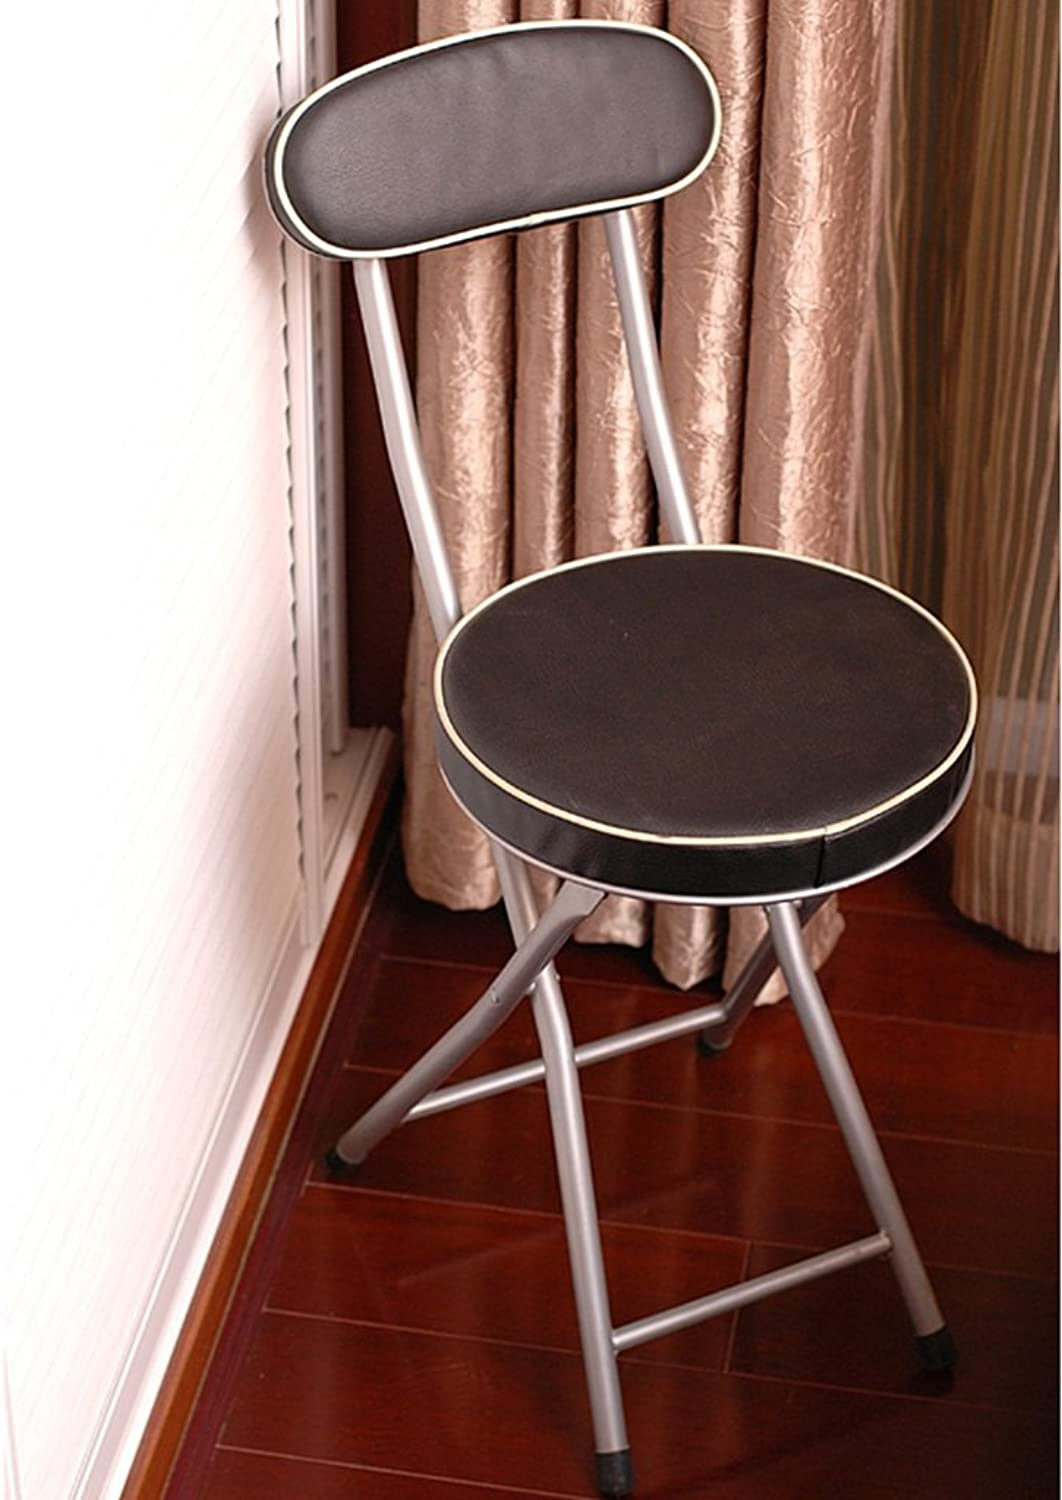 A-Fort Backrest Stool Folding Chair Small Round Chair Portable Leisure Computer Chair Office Chair (color   Black)